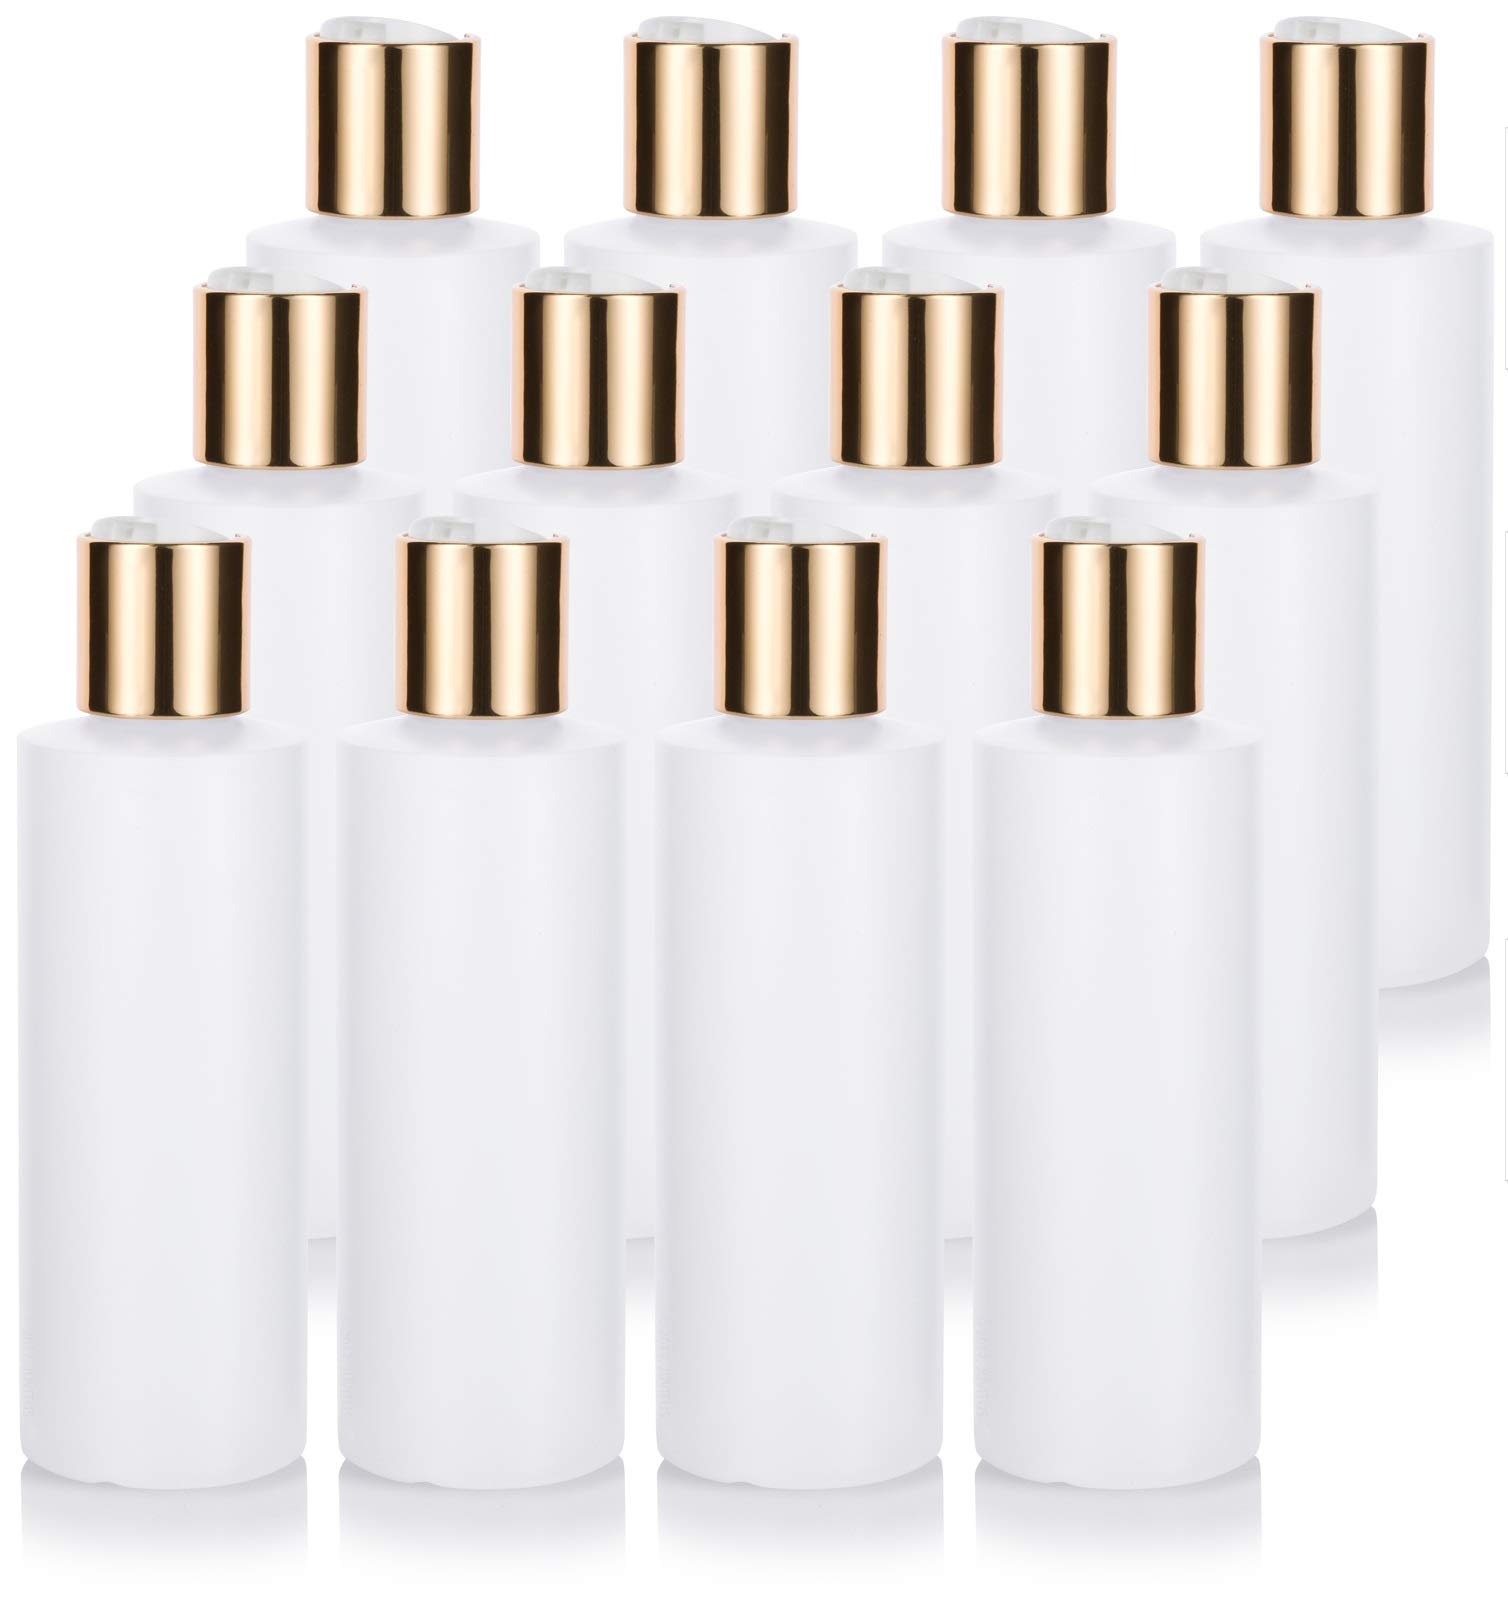 6 oz Clear Natural Refillable Plastic Squeeze Bottle with Gold Metal Disc Cap - (12 Pack)